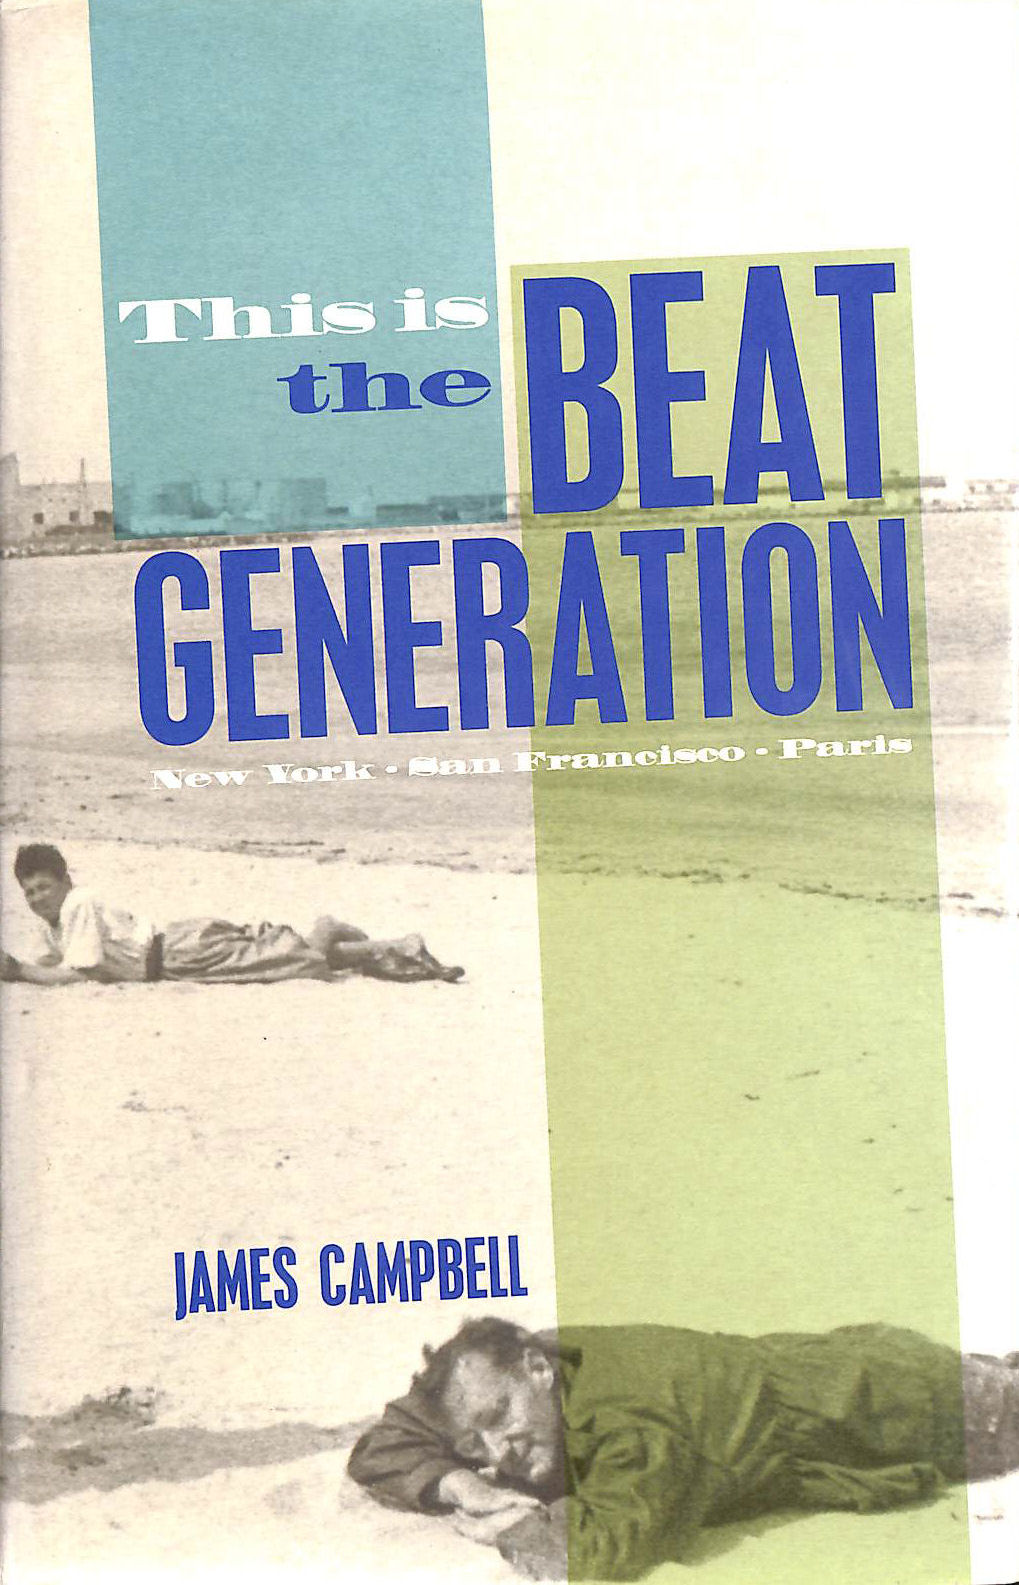 Image for This is the Beat Generation